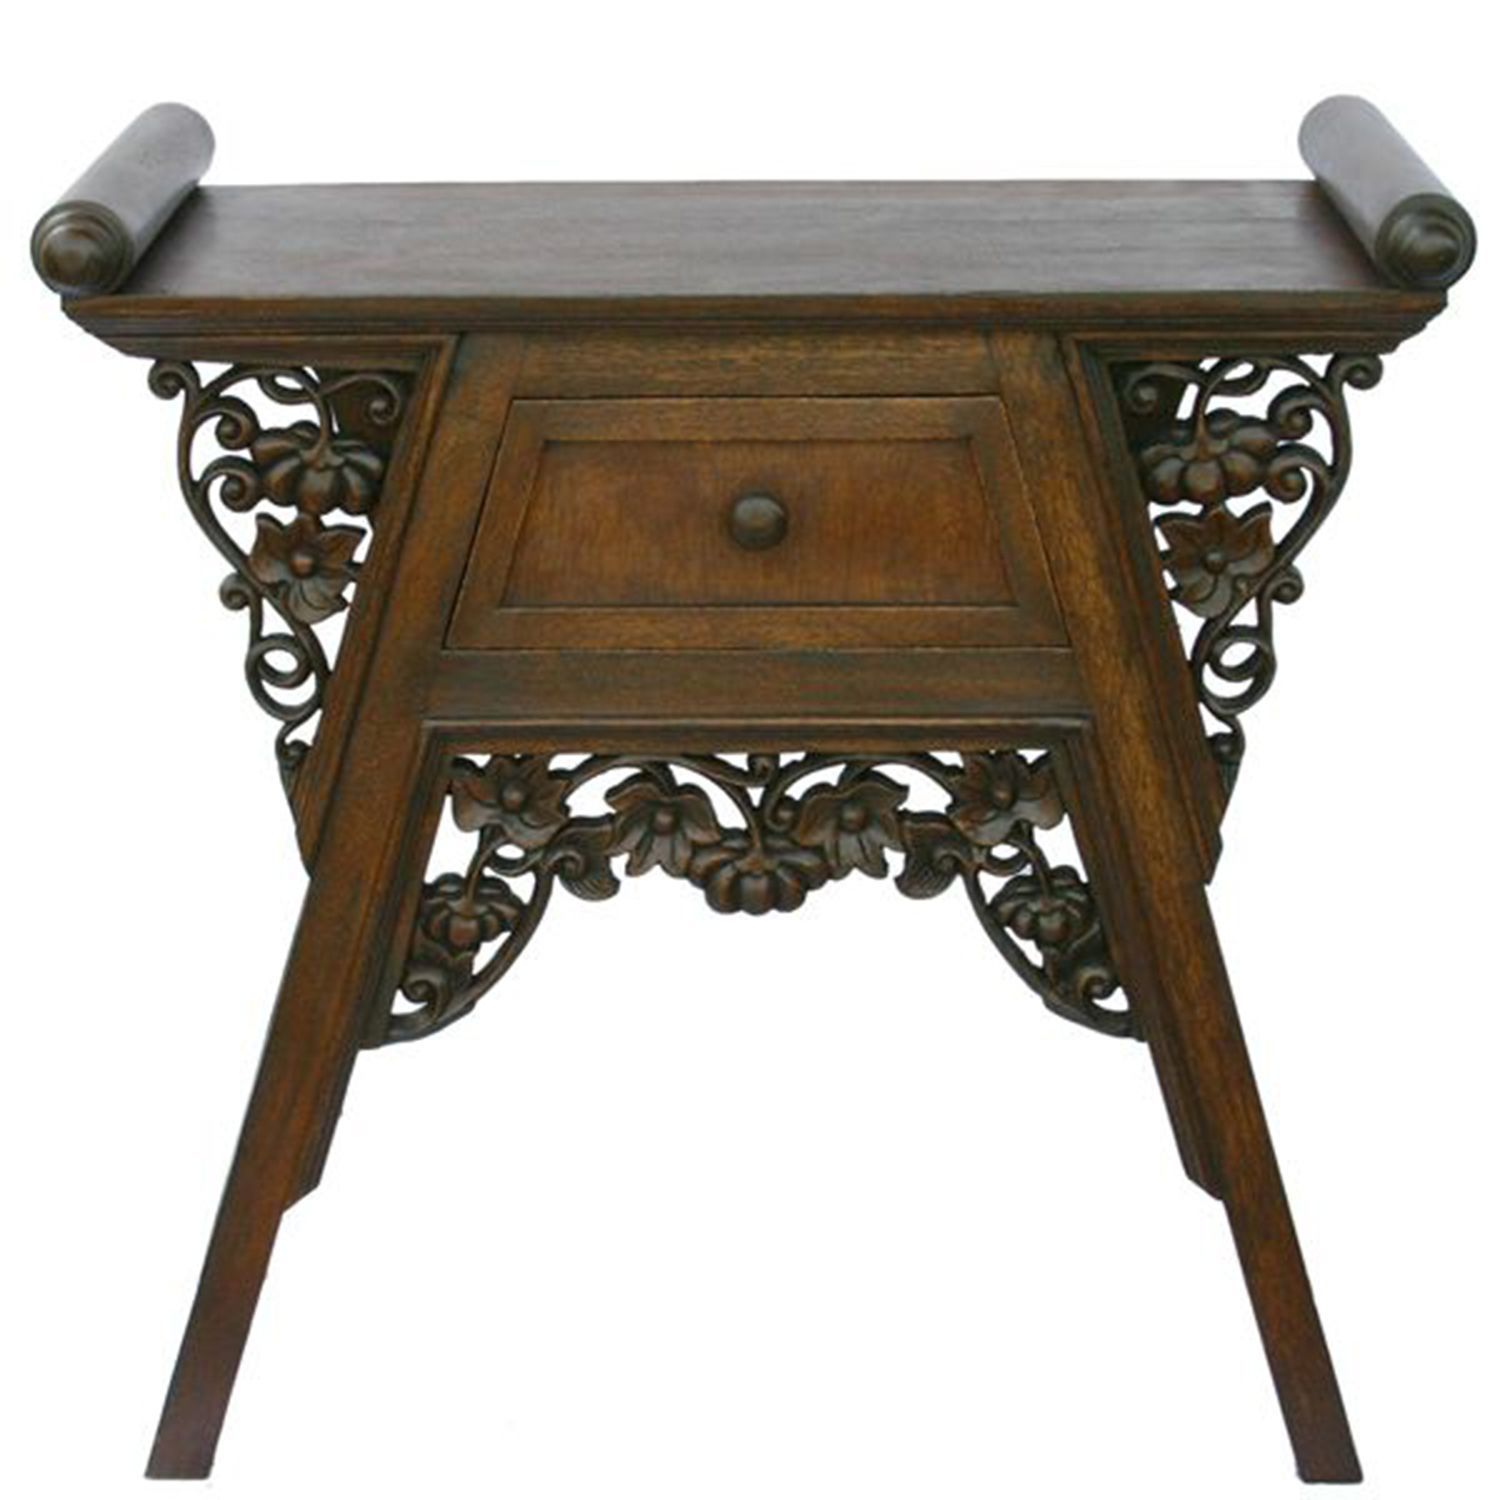 furniture elegant teak end table sets dark finish carved wood rattan set unique console for home decor embellished with floral carvings trapezoidal drawer wooden scroll accents